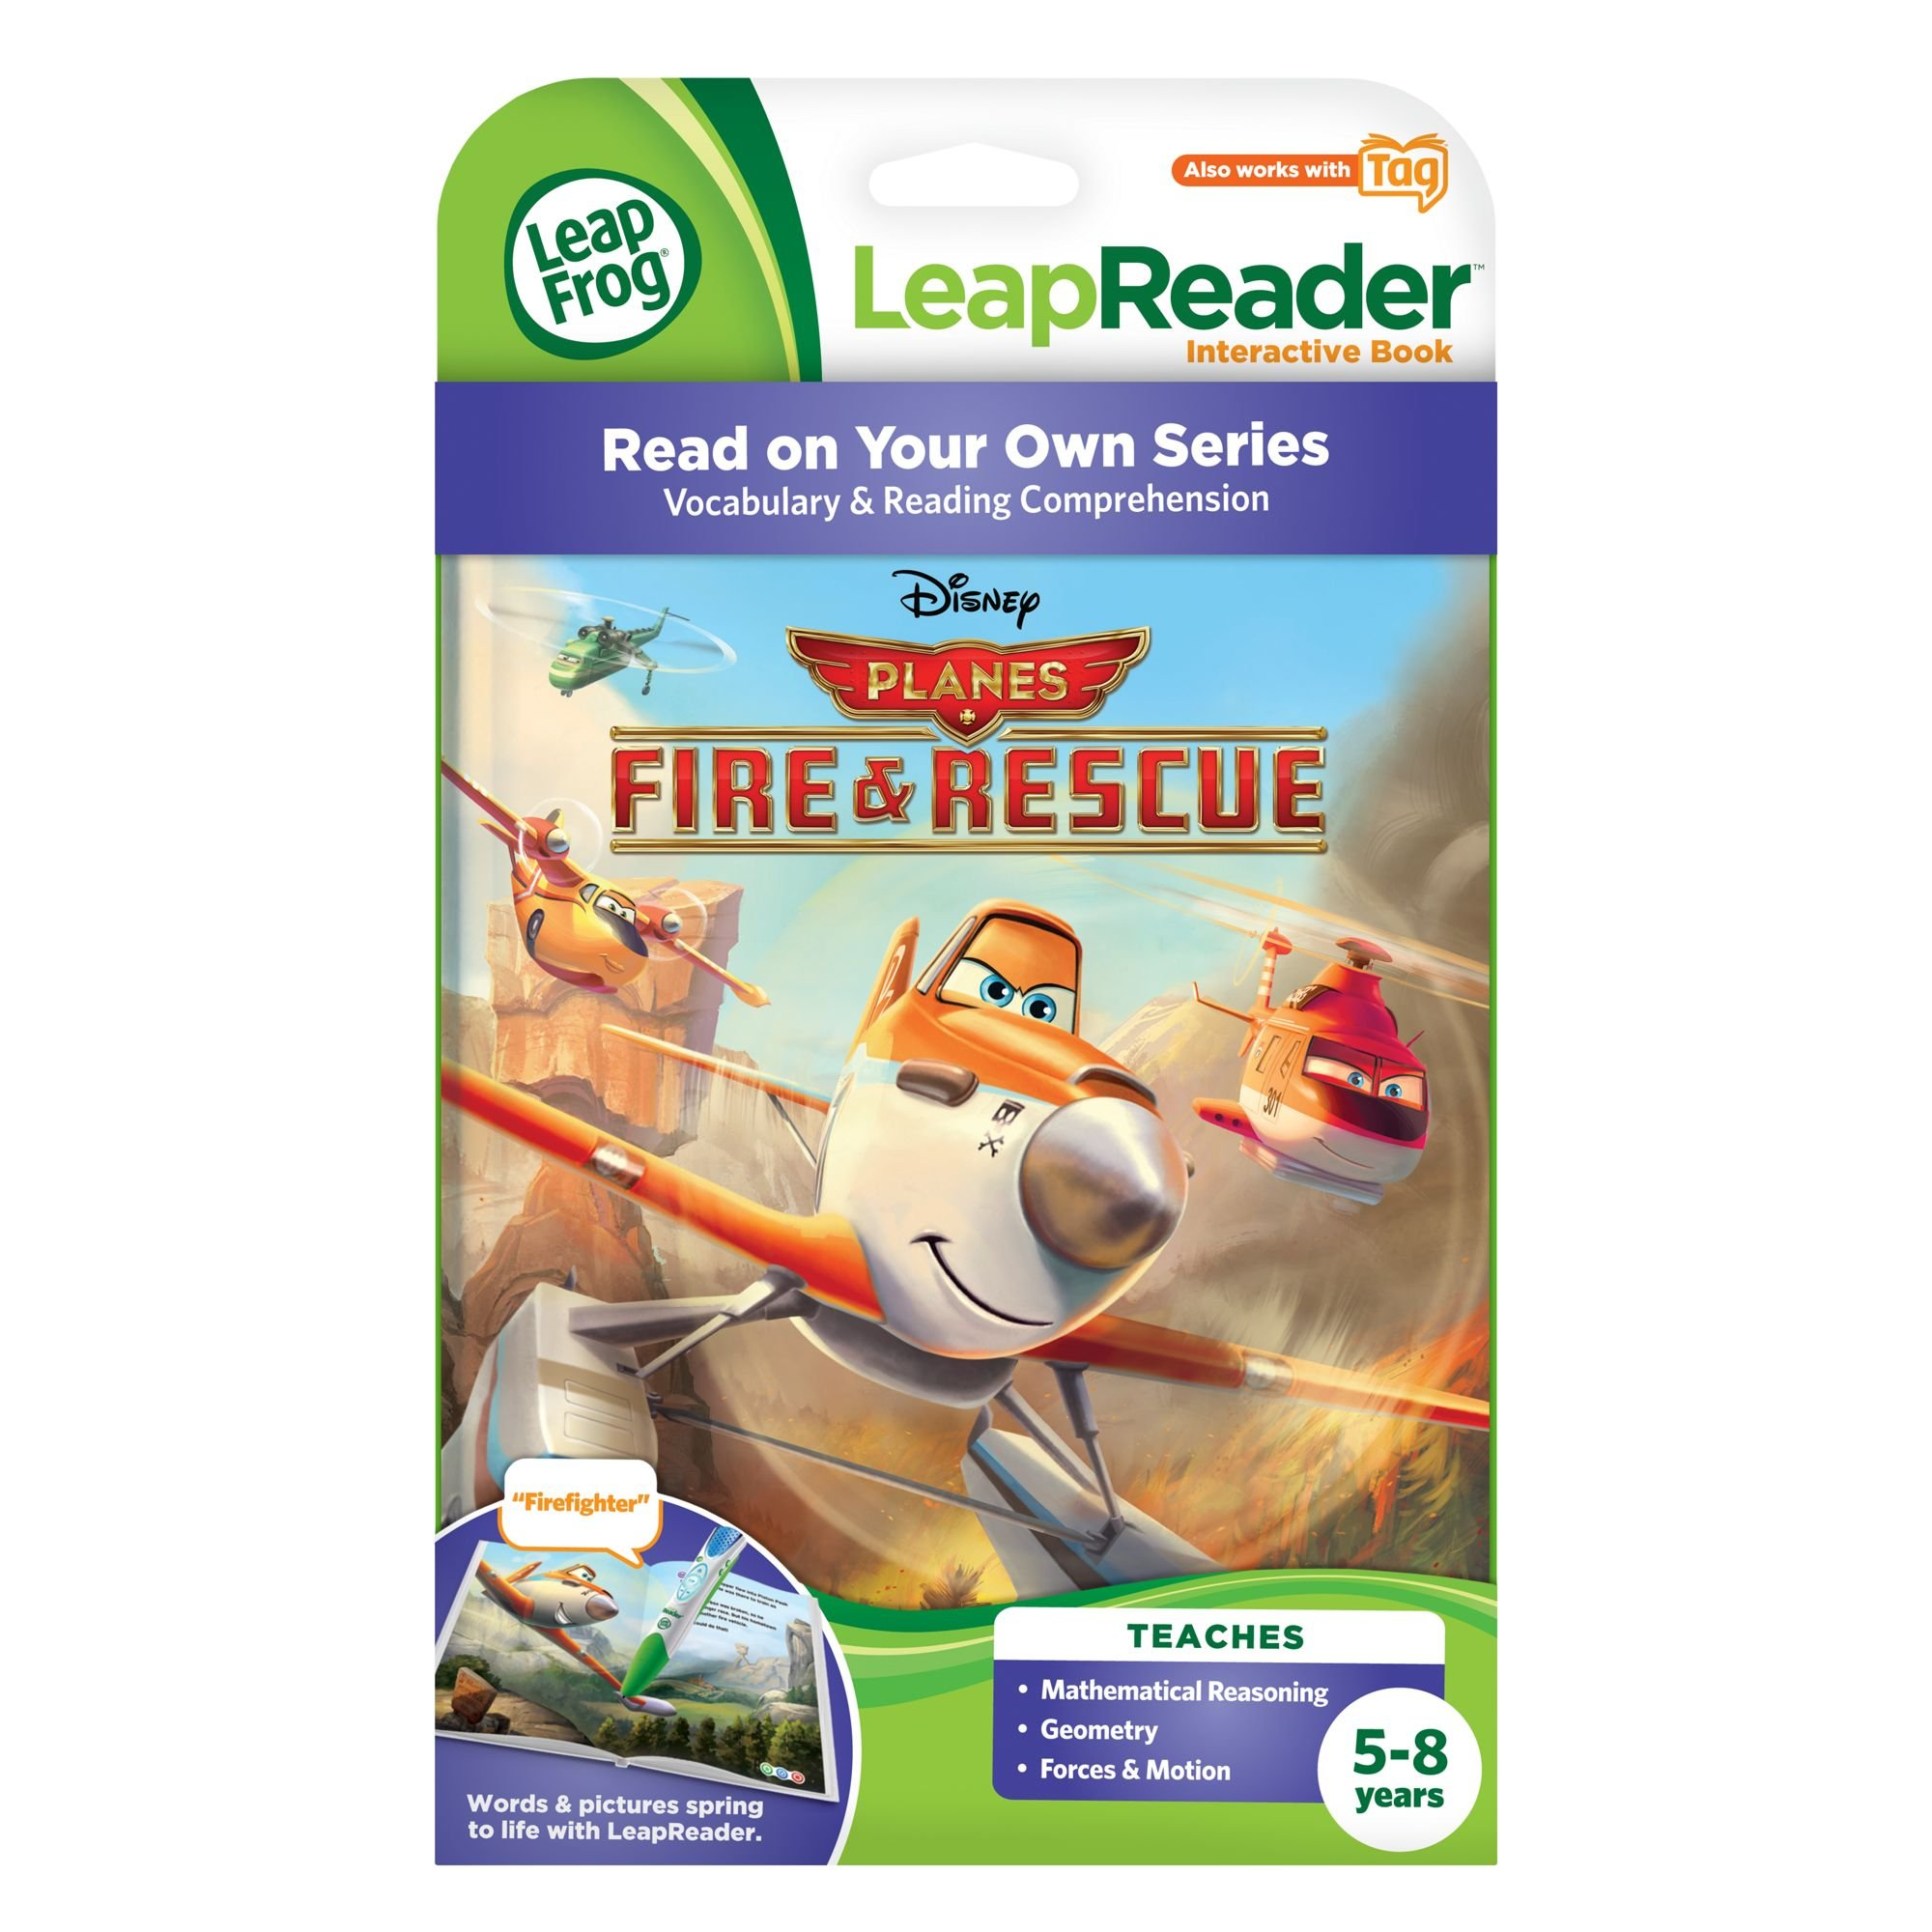 LeapFrog LeapReader Book: Disney Planes Fire and Rescue by LeapFrog (Image #4)